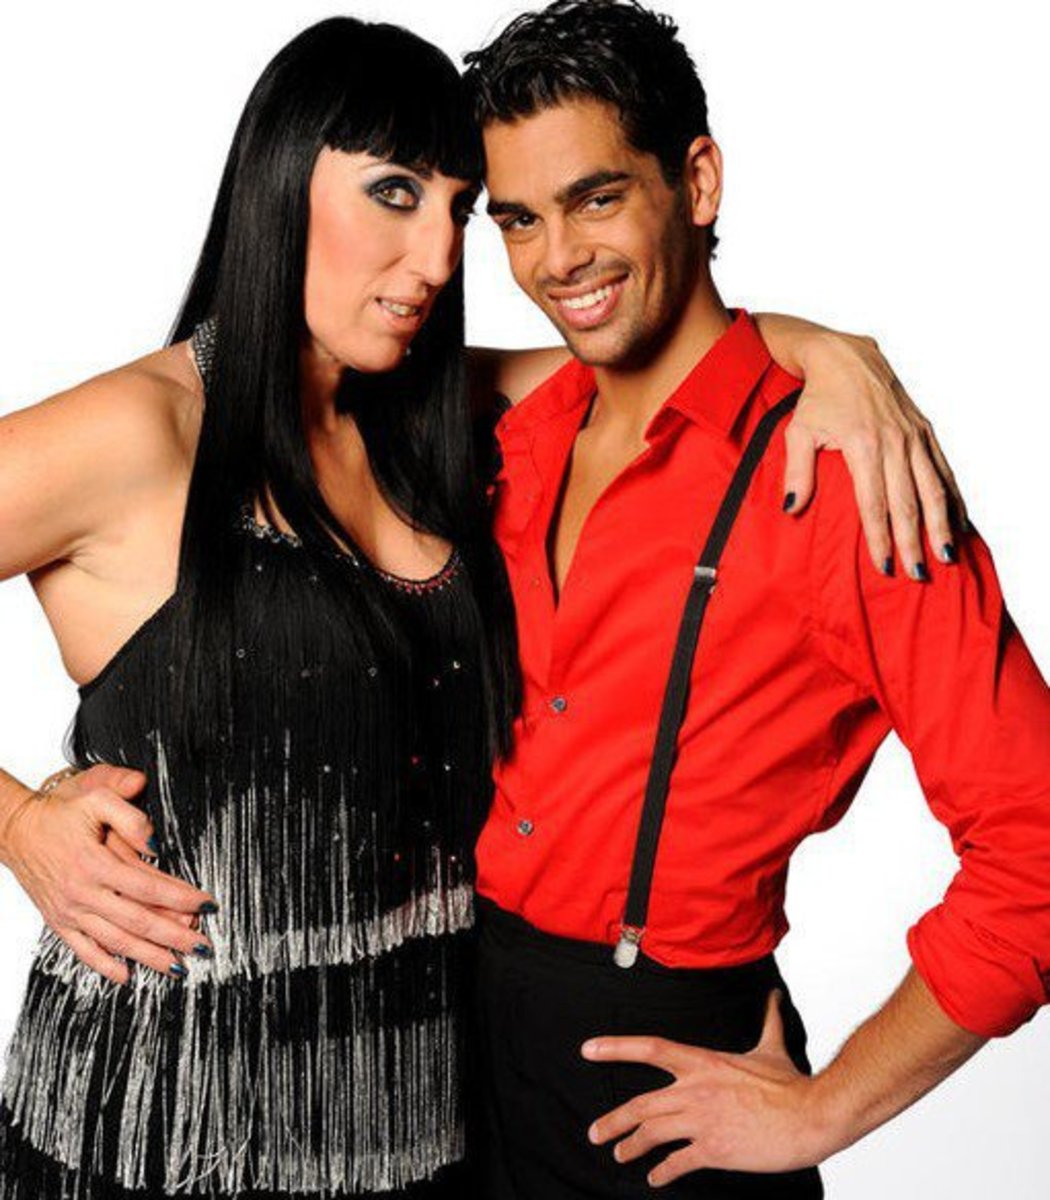 French Cha Cha Cha Songs in Dancing with the Stars. Part 1 of 2